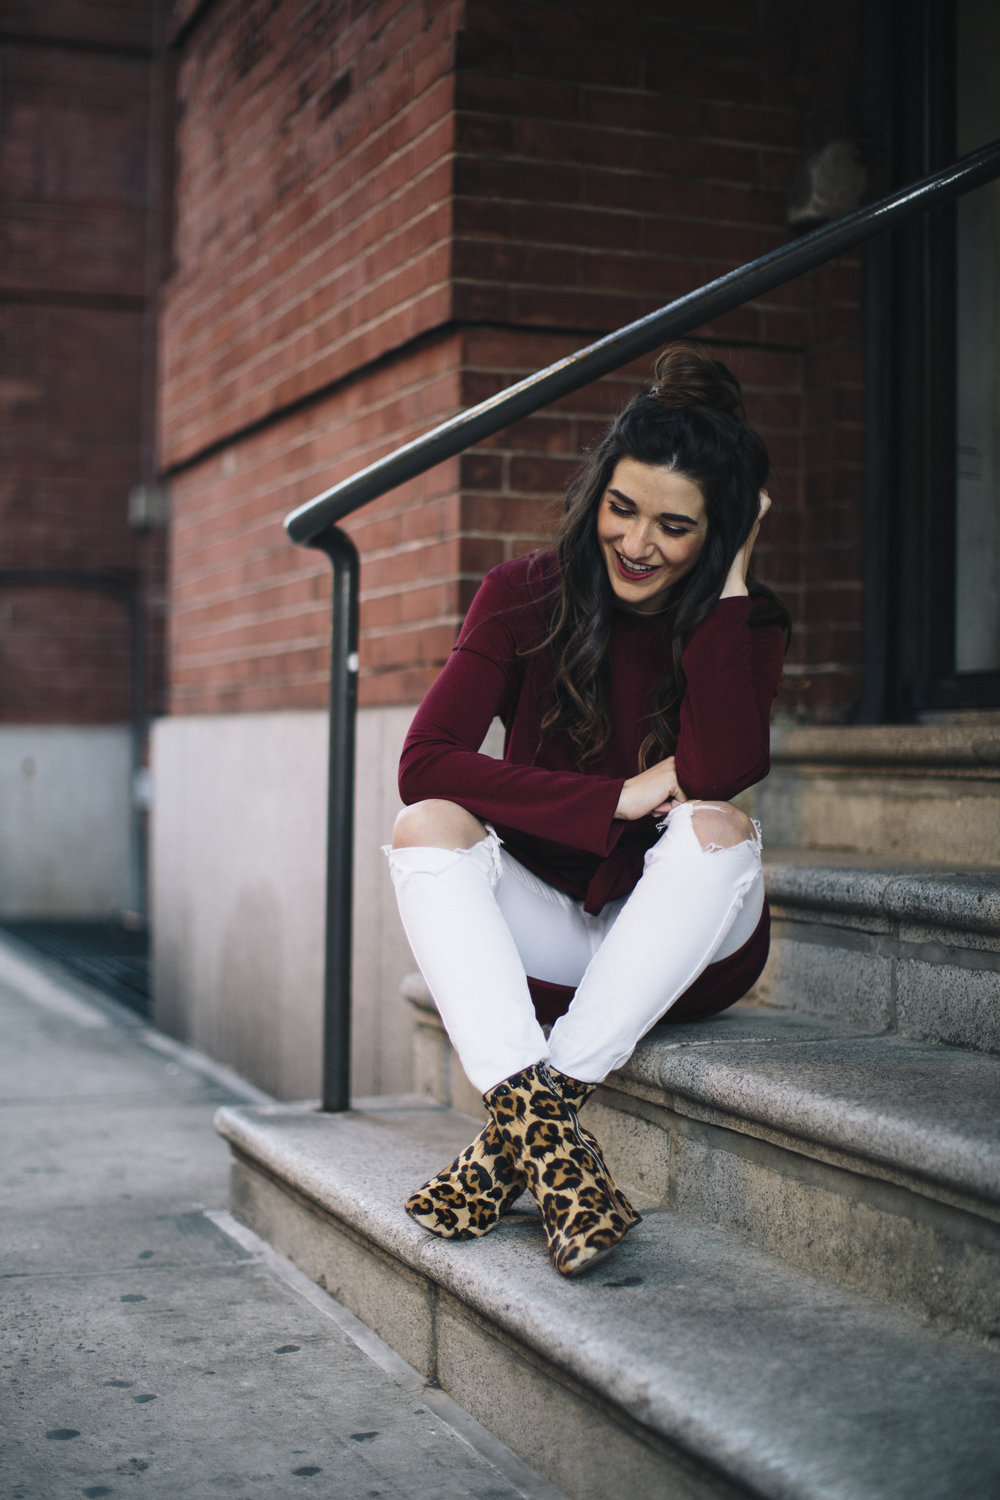 Knotted Dress + Ripped White Jeans 4 Ways To Build Connections Louboutins & Love Fashion Blog Esther Santer NYC Street Style Blogger Outfit OOTD Trendy Red Maroon Burgundy Winter Color Leopard Coach Booties Pants Girl Women Topknot Bun Hair Shoes Wear.jpg